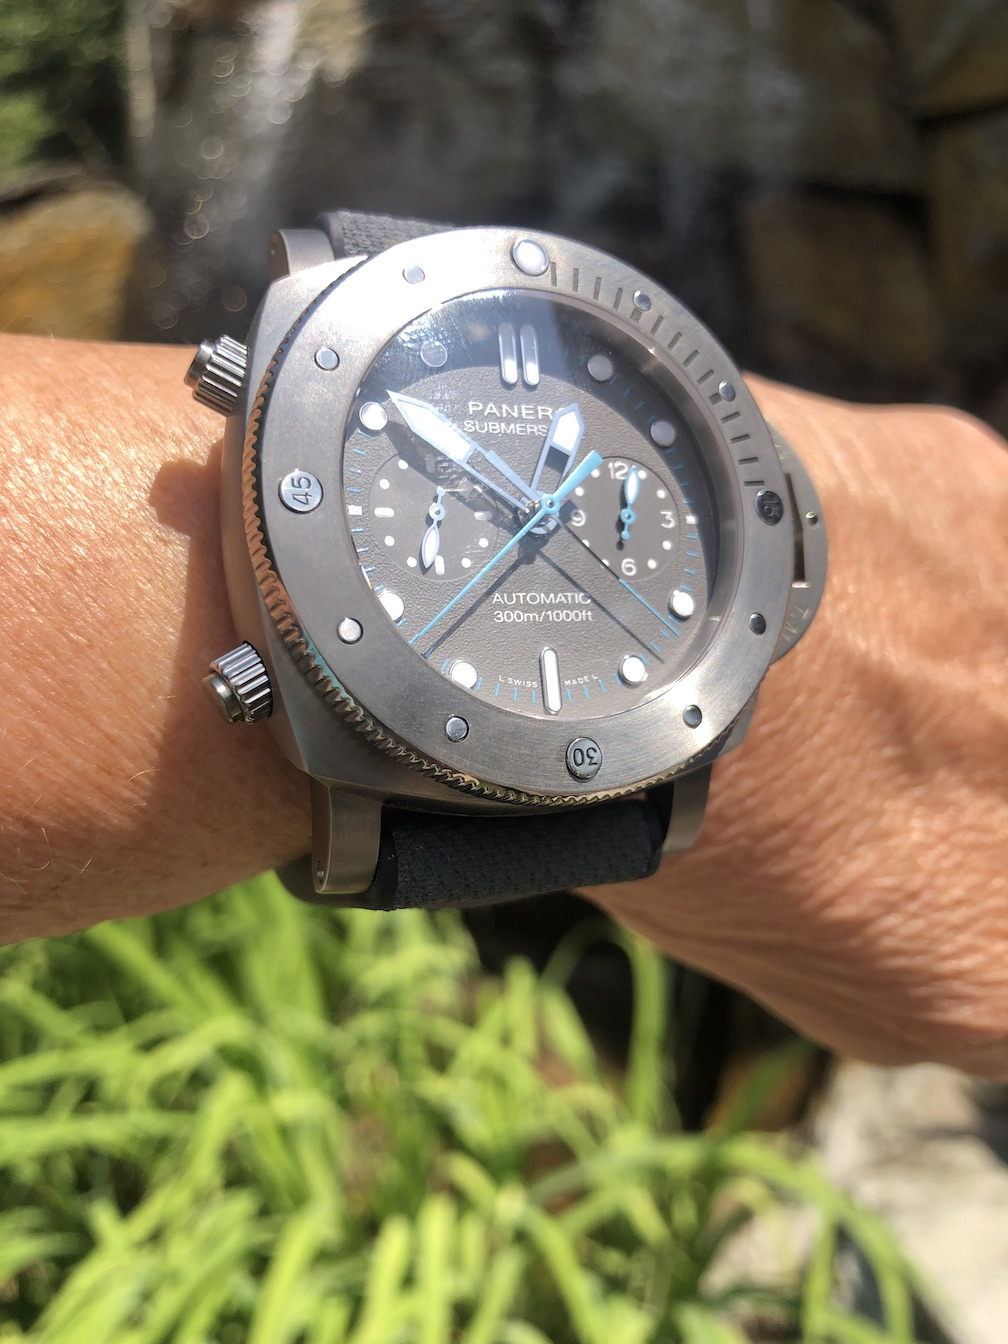 Panerai Submersible Chrono Flyback watch created in collaboration with Jimmy Chin